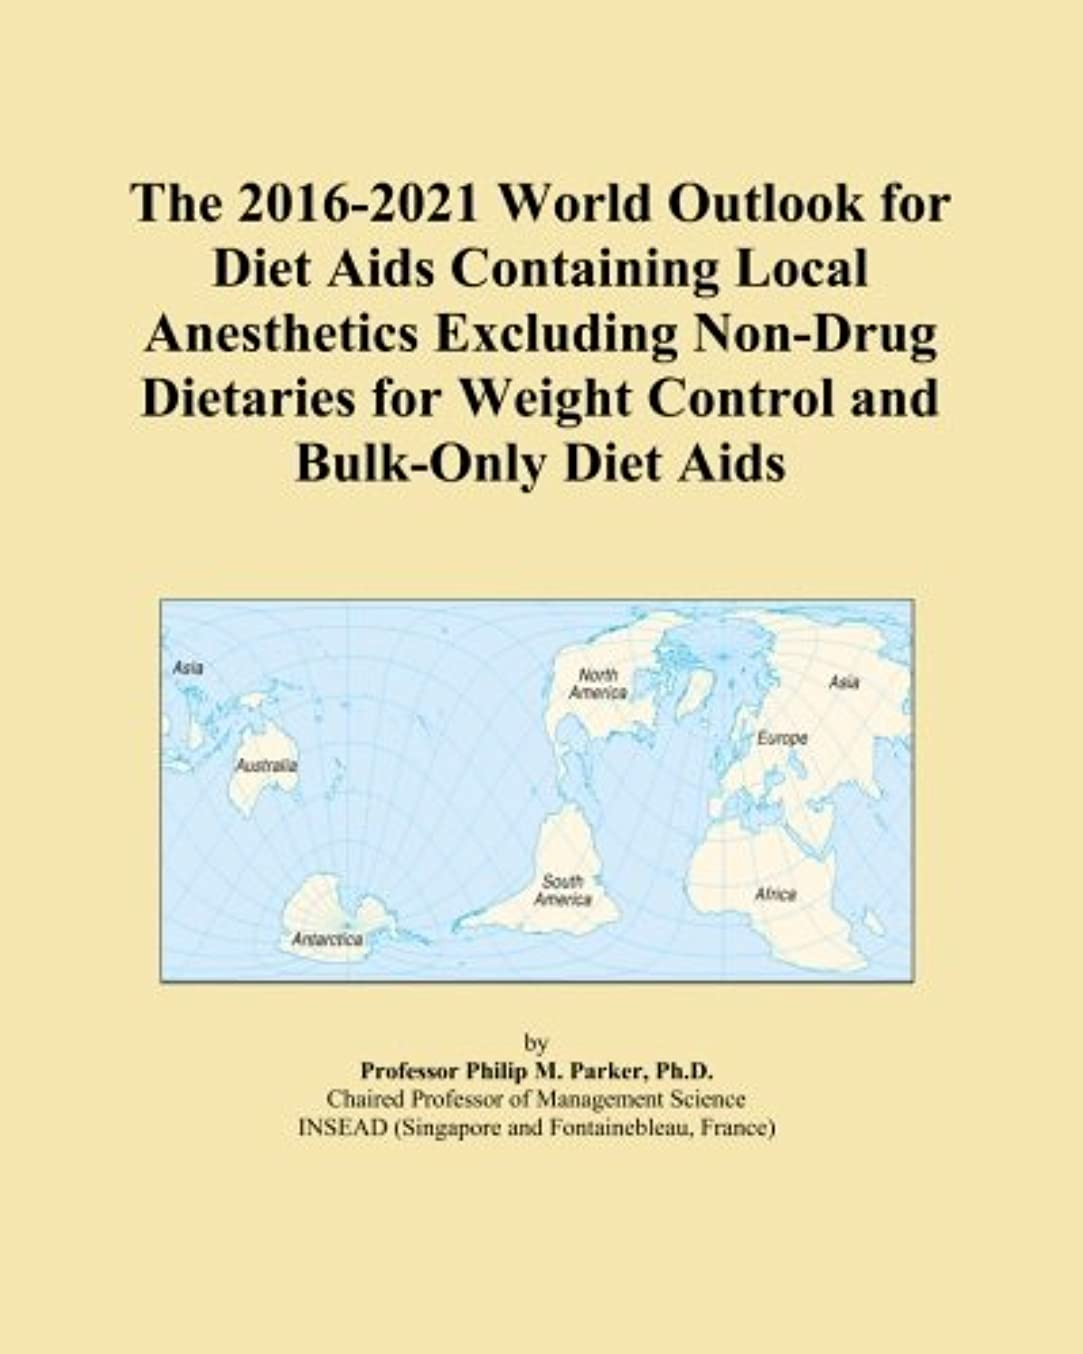 The 2016-2021 World Outlook for Diet Aids Containing Local Anesthetics Excluding Non-Drug Dietaries for Weight Control and Bulk-Only Diet Aids